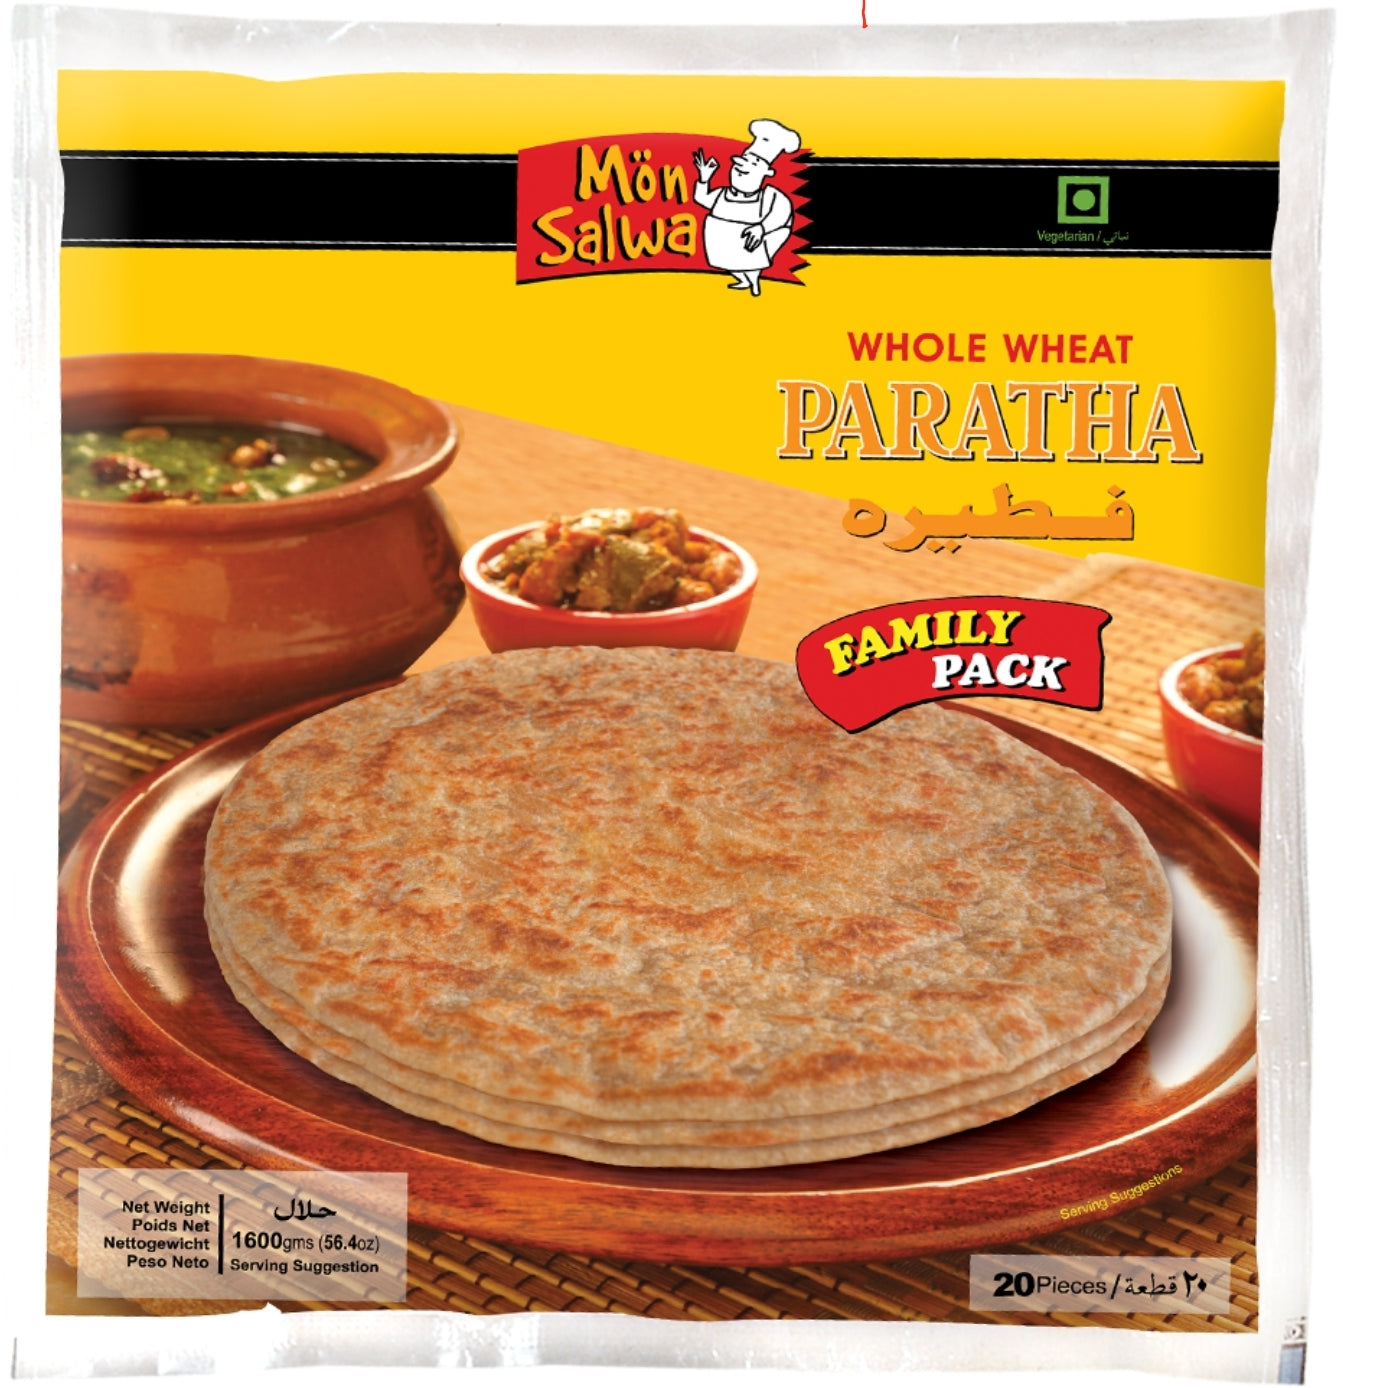 MonSalwa Whole Wheat Paratha family pack